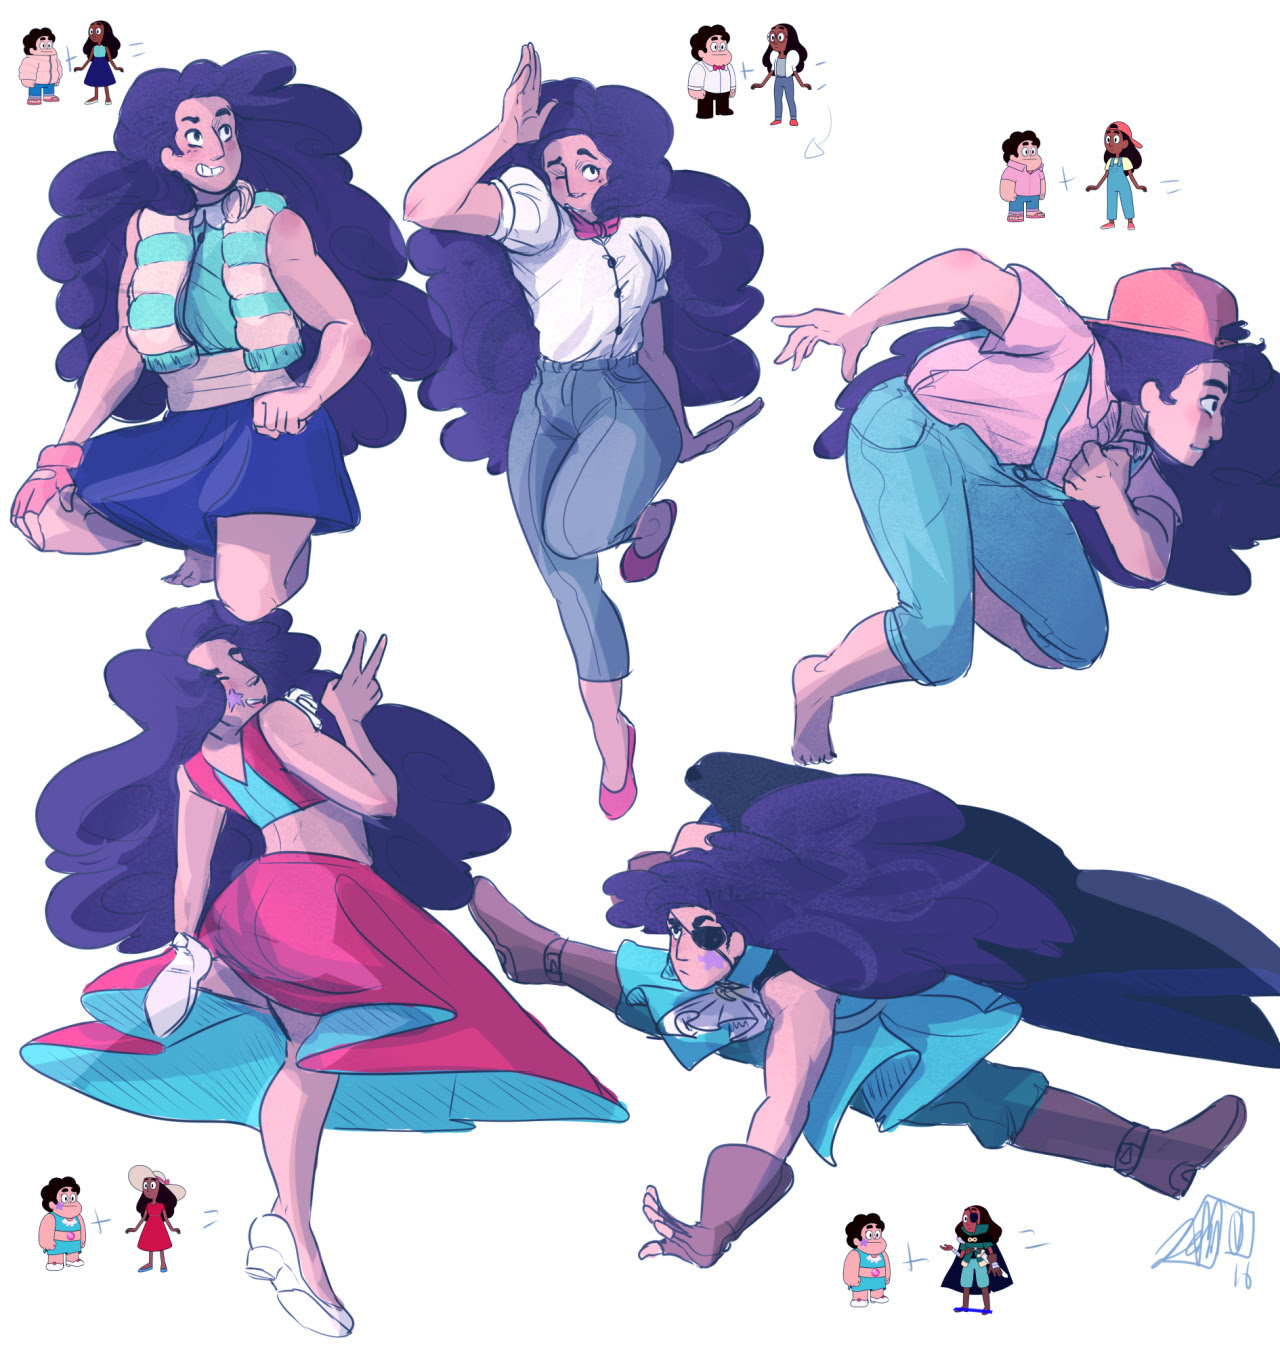 Some Stevonnie requests for @l-a-l-o-u's Stevonnie meme I did at my stream haha, these were really fun to do!